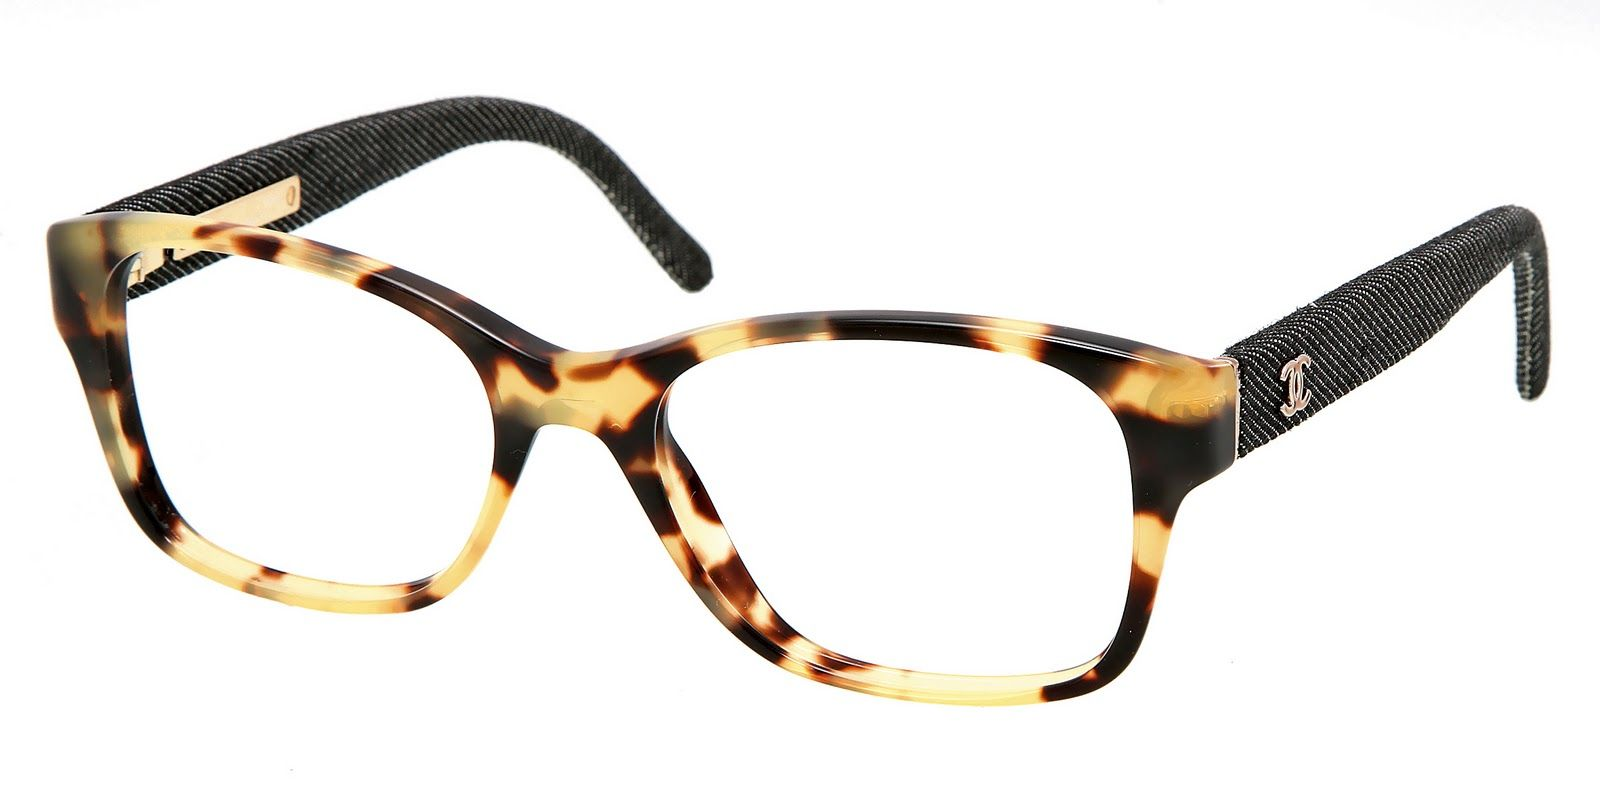 Thick Frame Chanel Eyewear Optical | Chanel Tortoise Shell ...